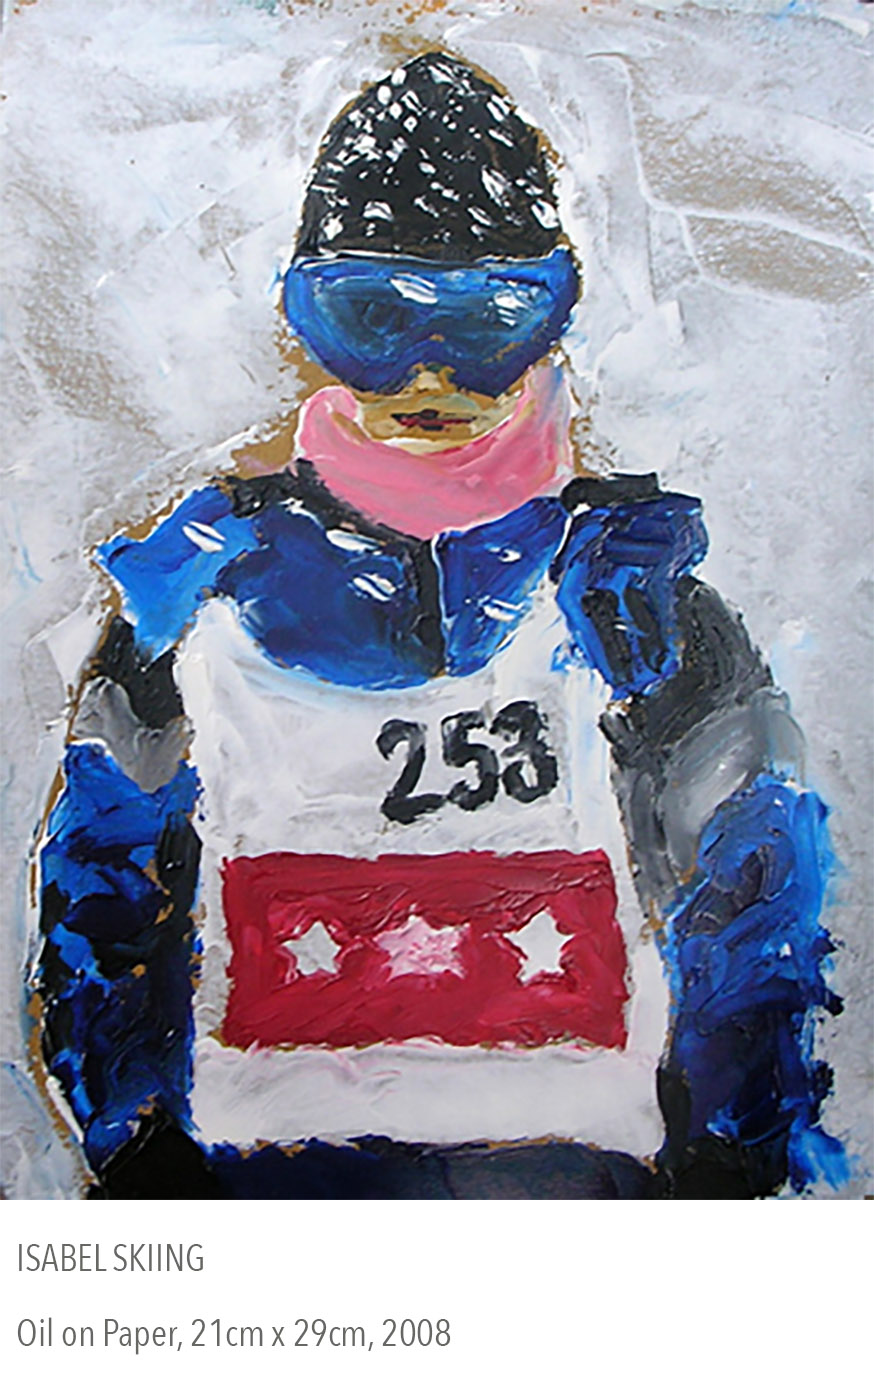 2008 oil painting called Isabel Skiing